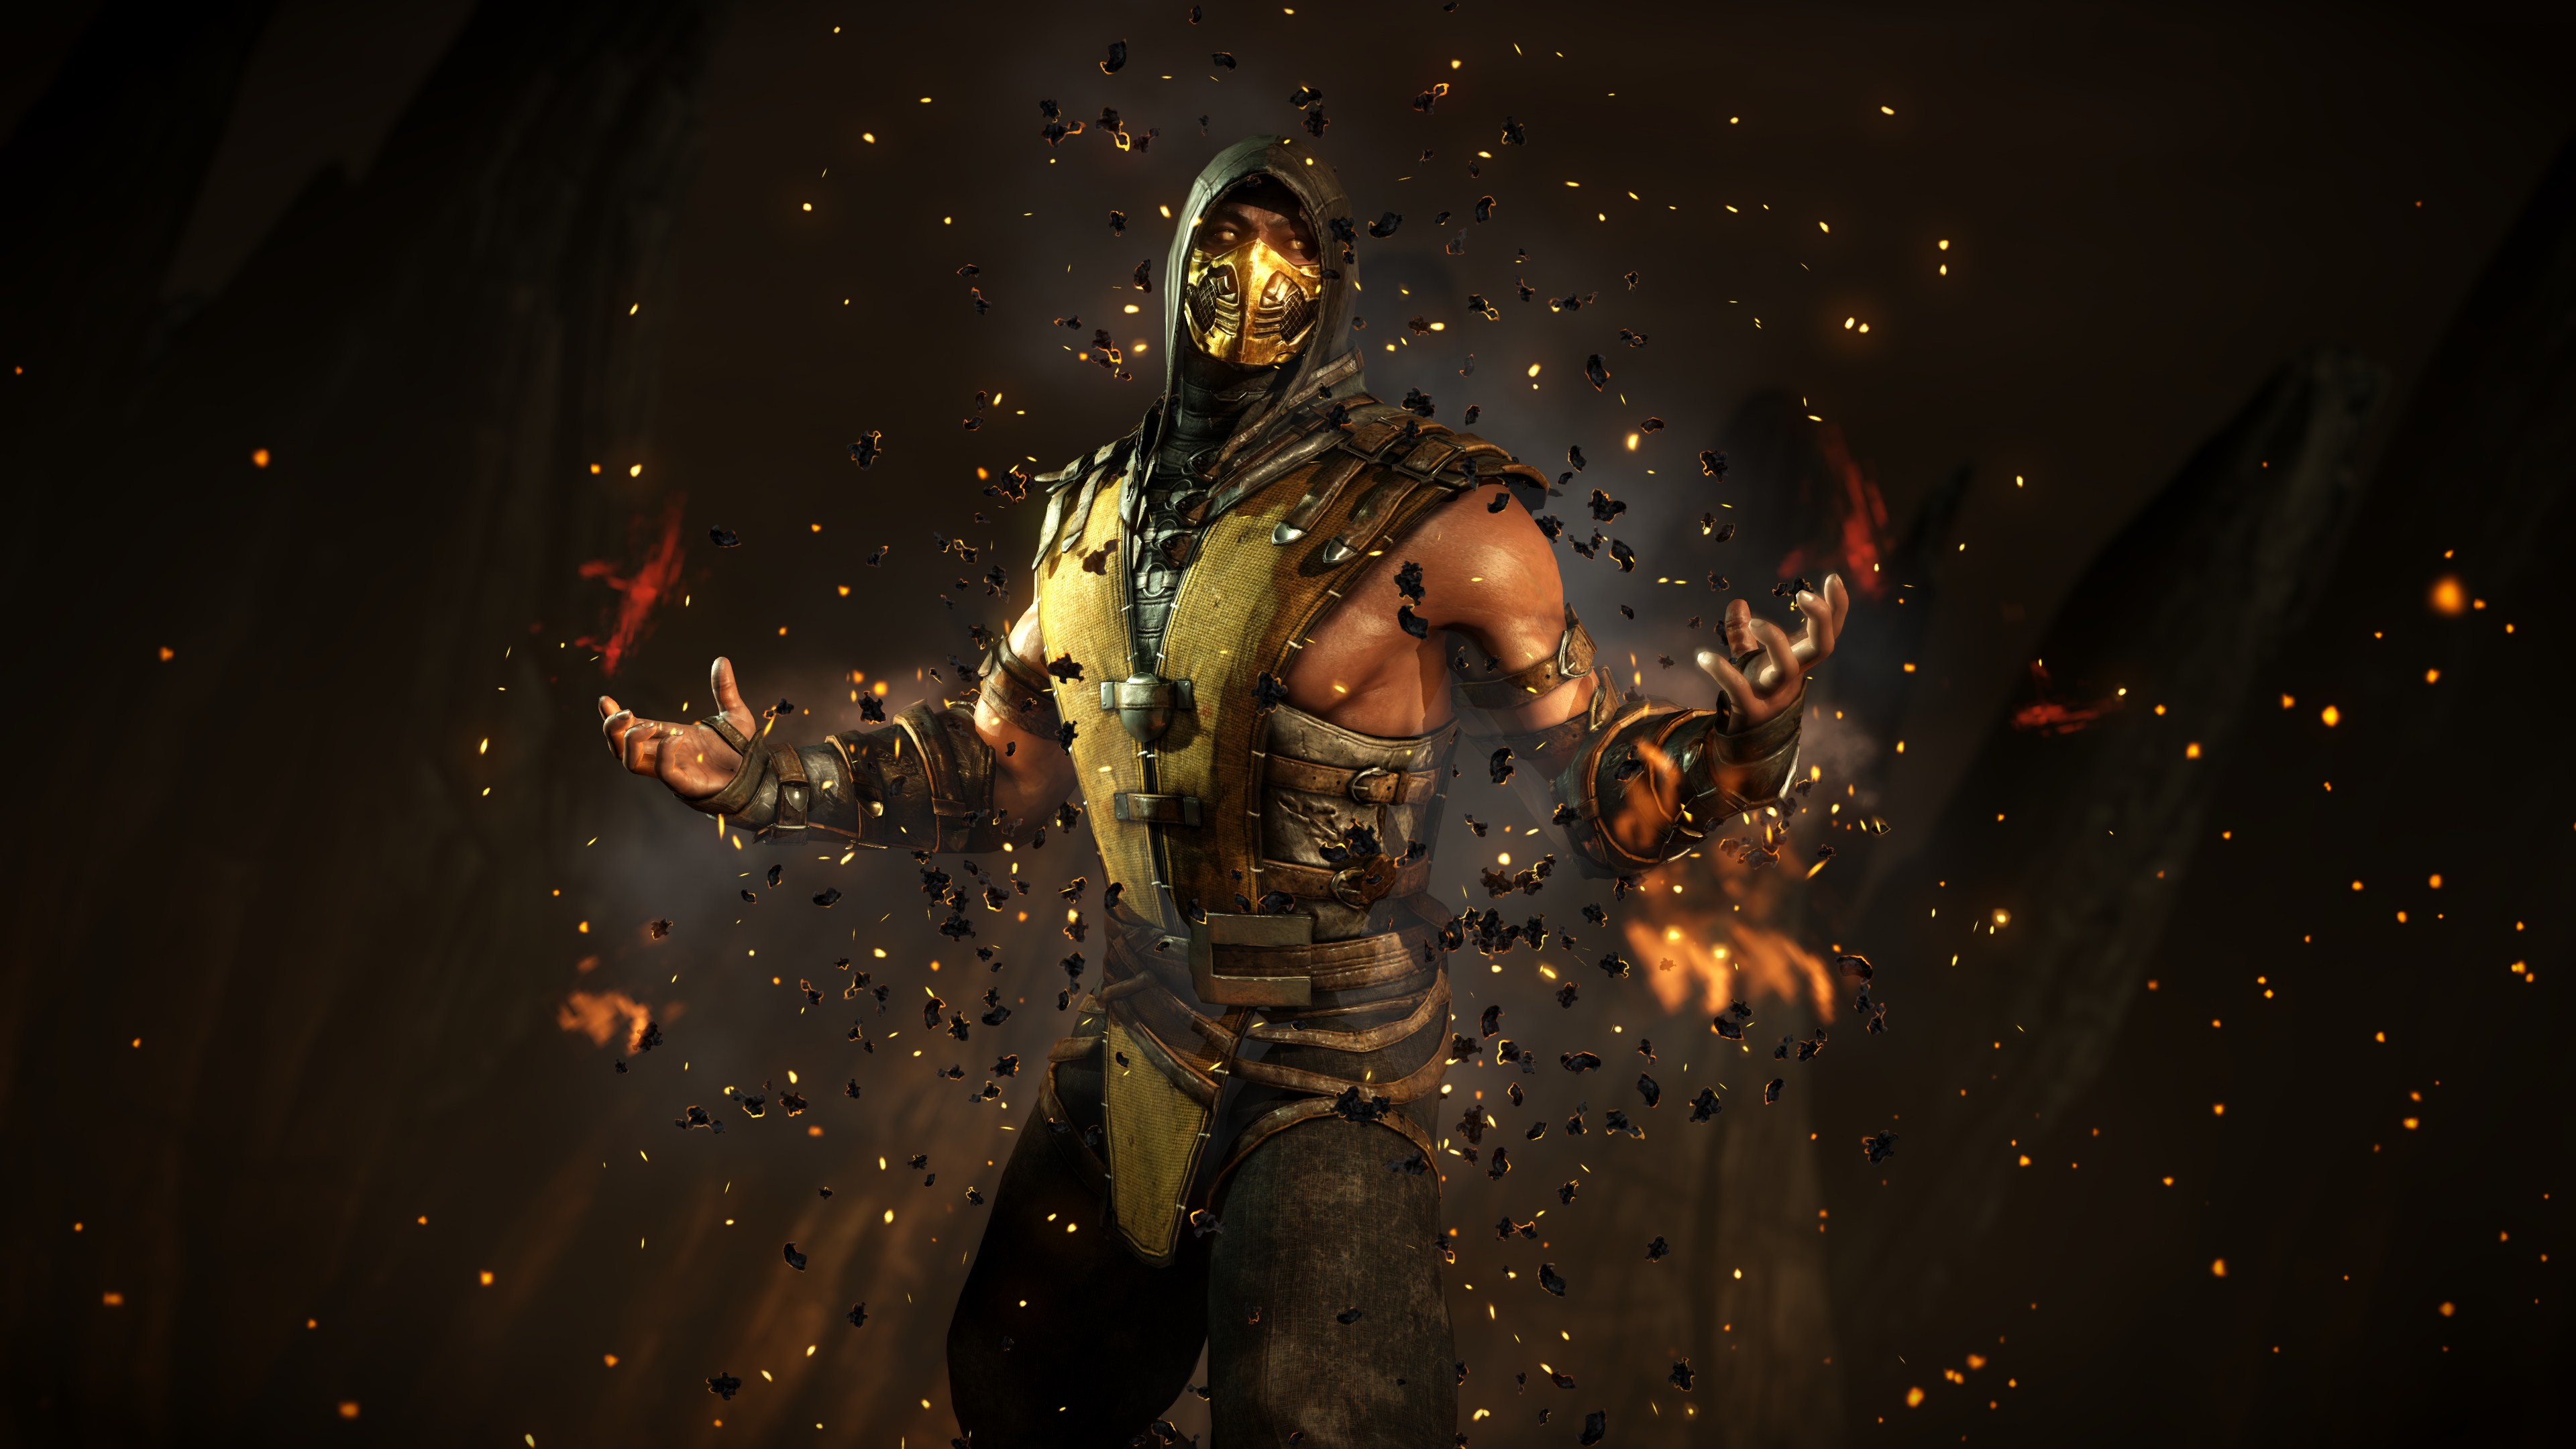 Mortal Kombat X Scorpion Wallpaper 3840x2160